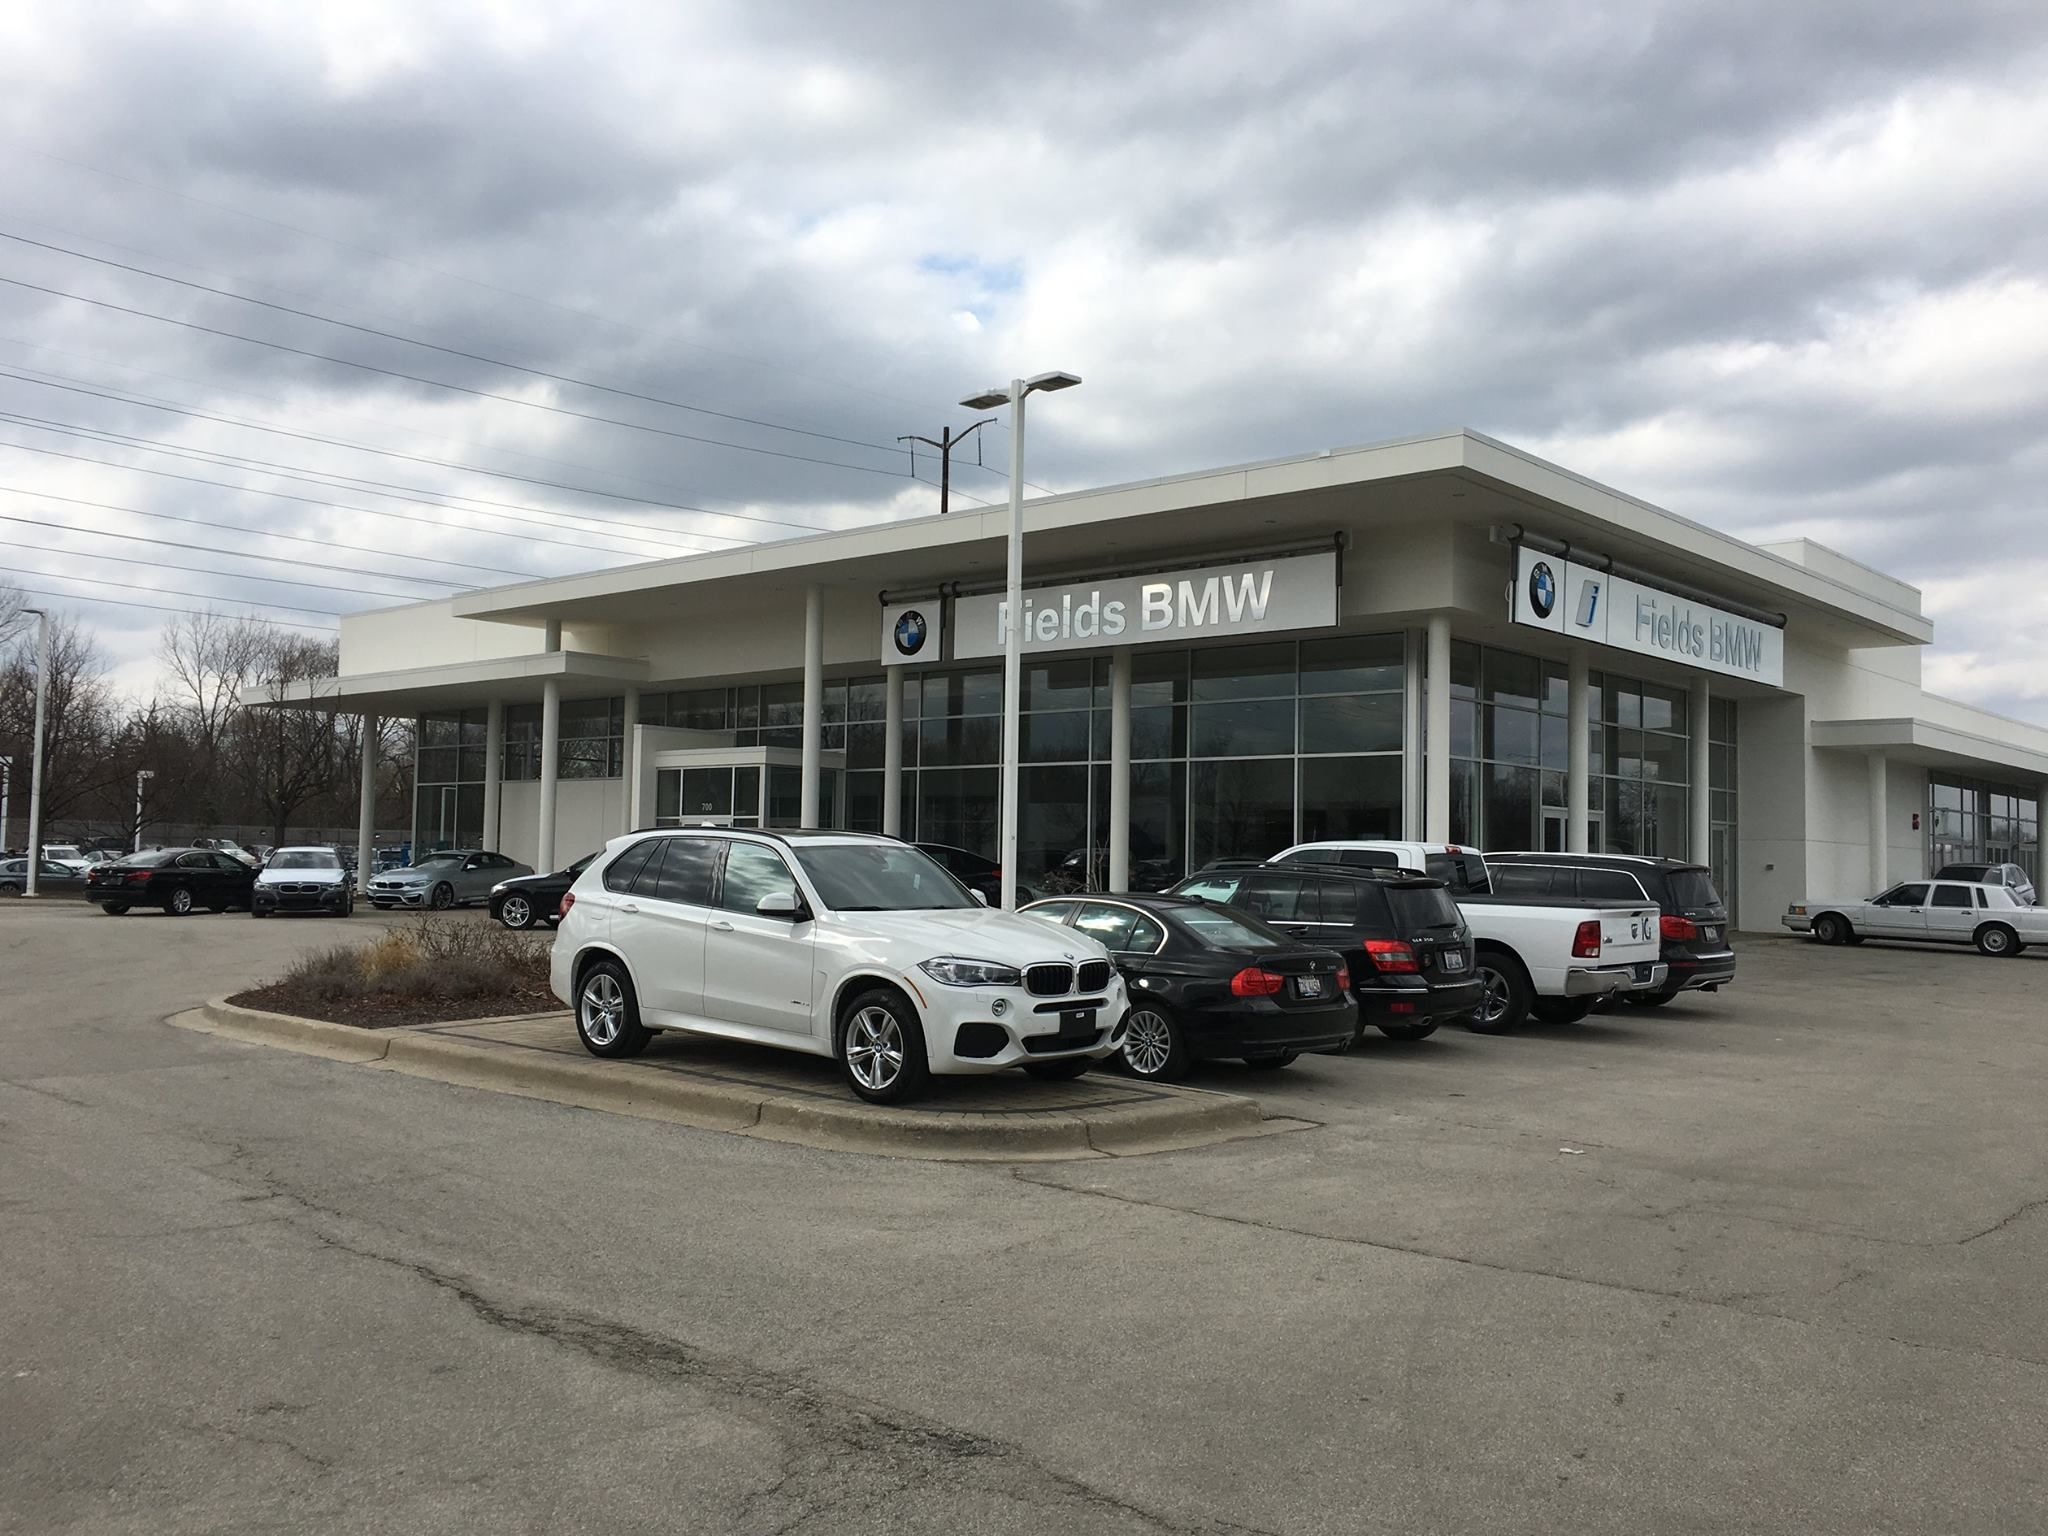 Our Mission Is To Make Every Customer A Customer For Life By Consistently Providing World Class Services Su Bmw Cars For Sale Northfield Luxury Car Dealership